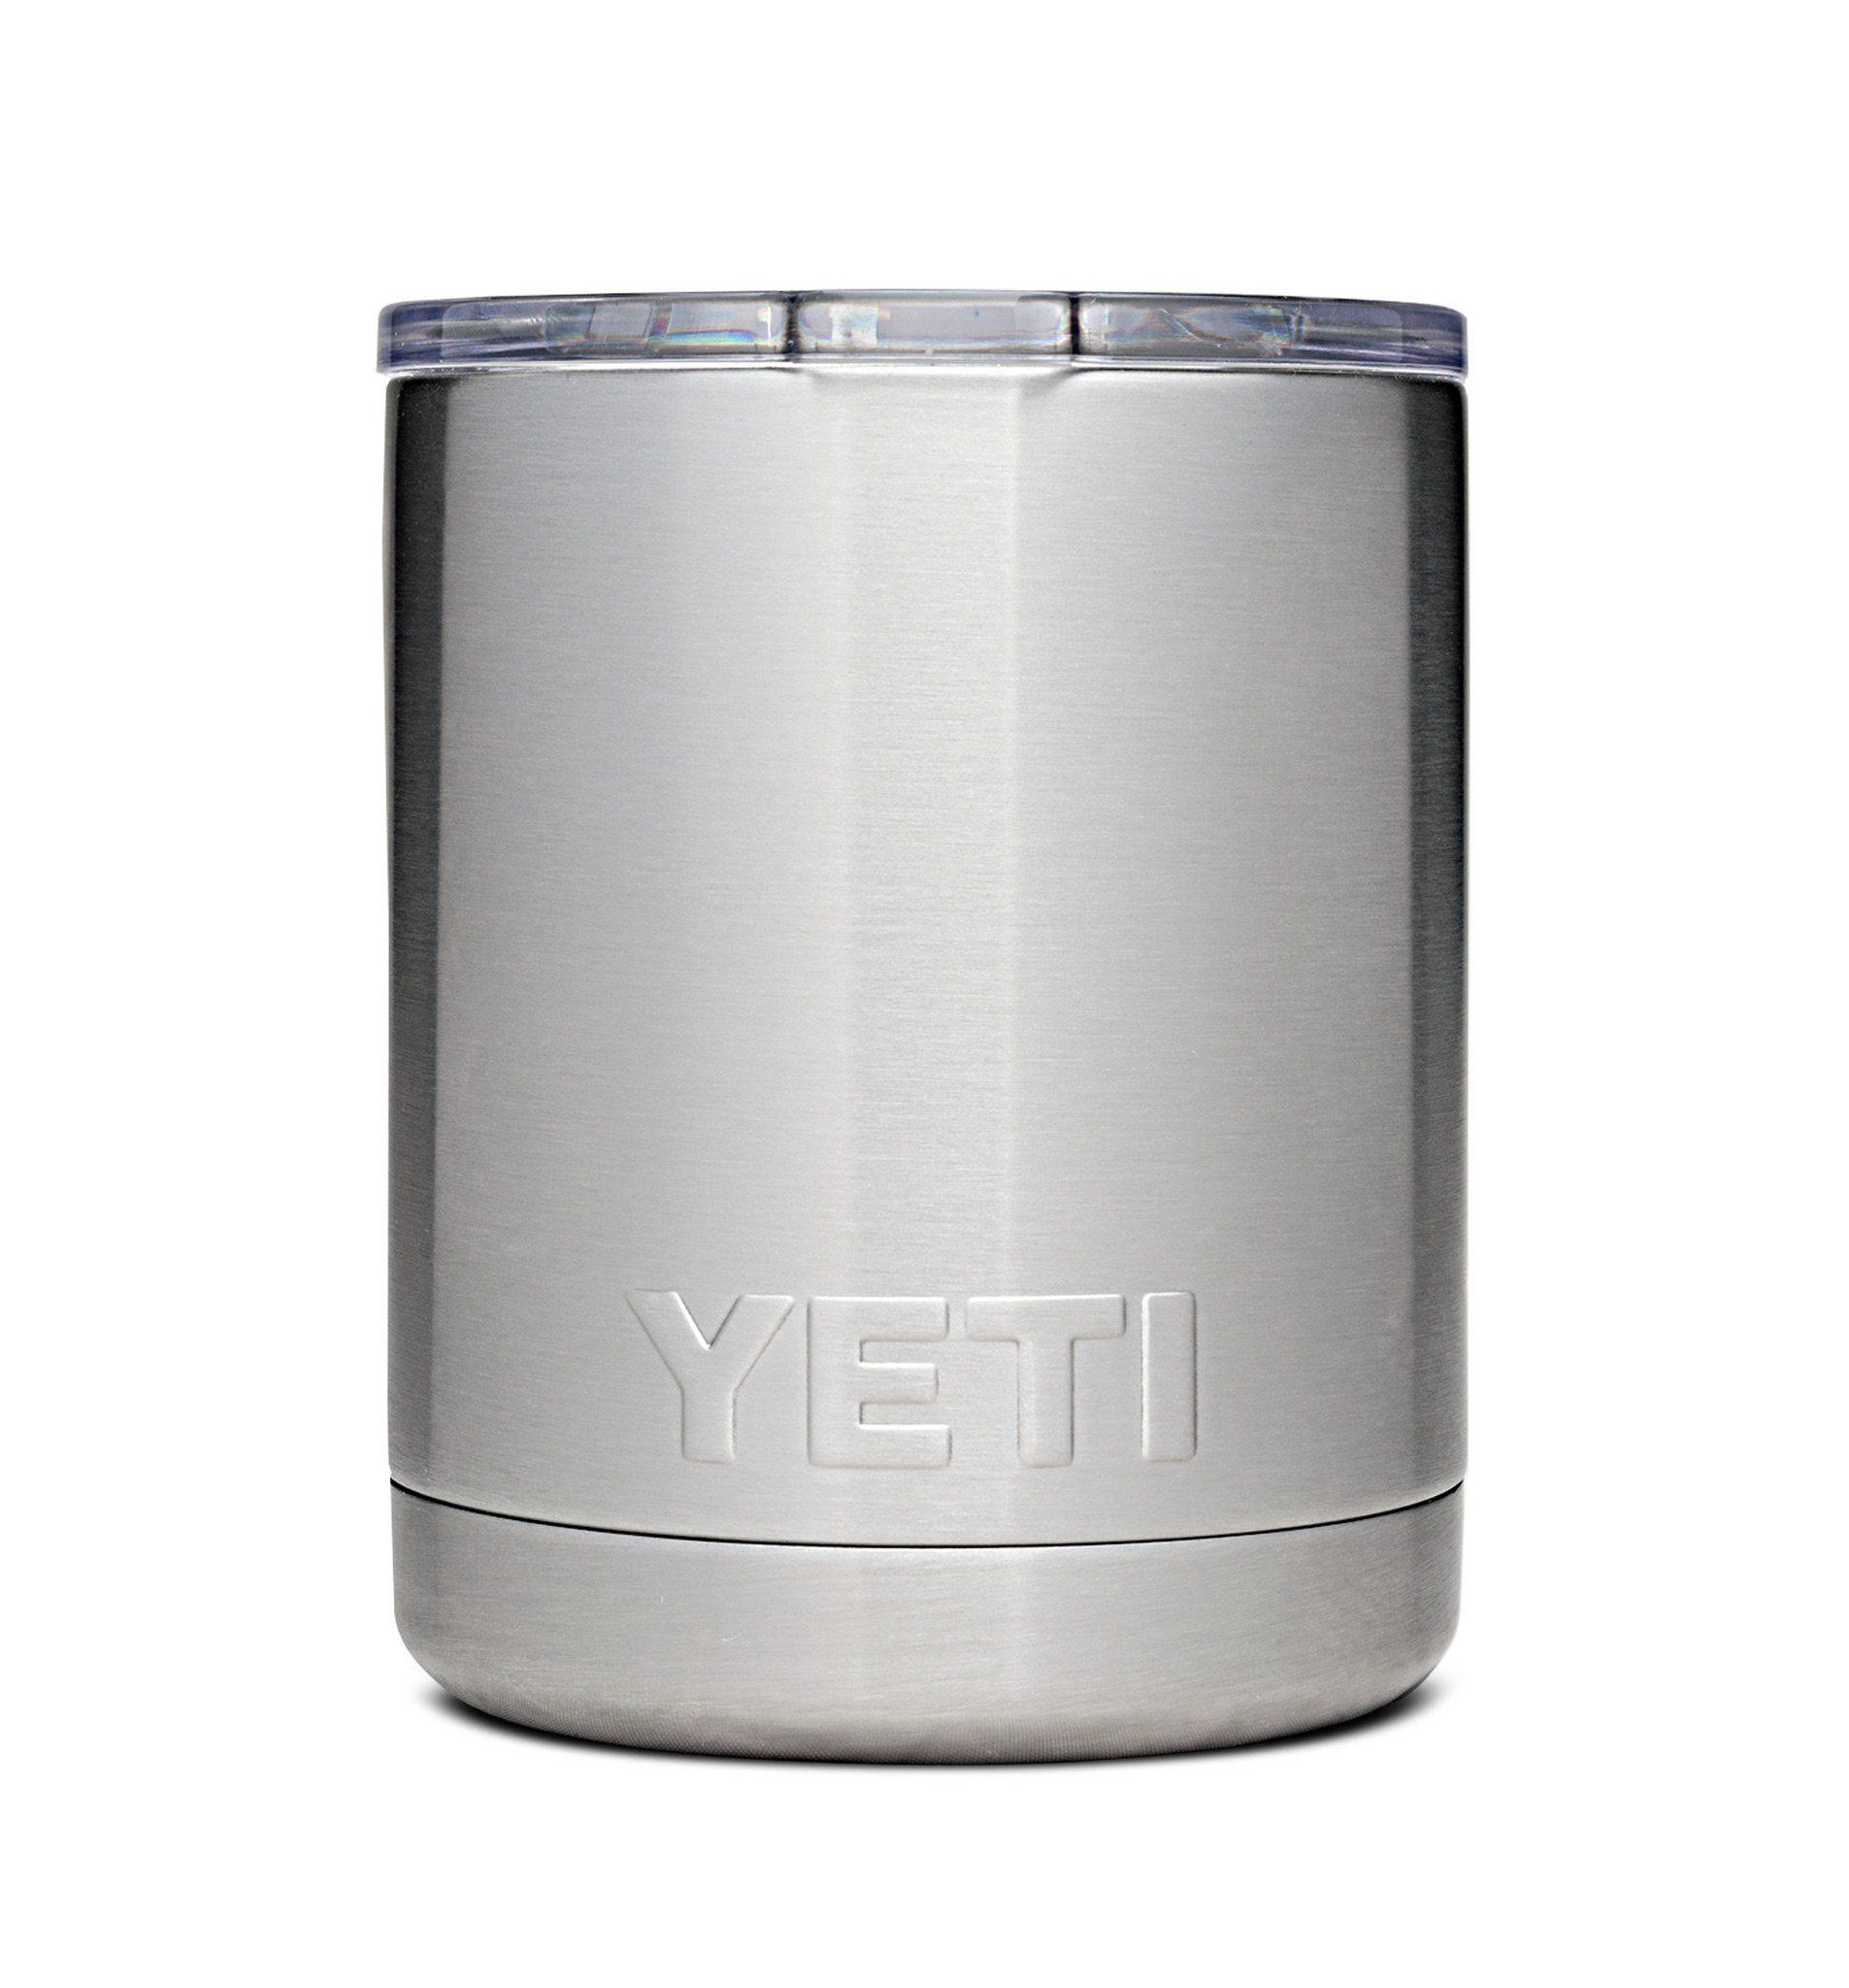 Yeti Rambler, Low ball/ Lid 10 oz Stainless Yeti lowball